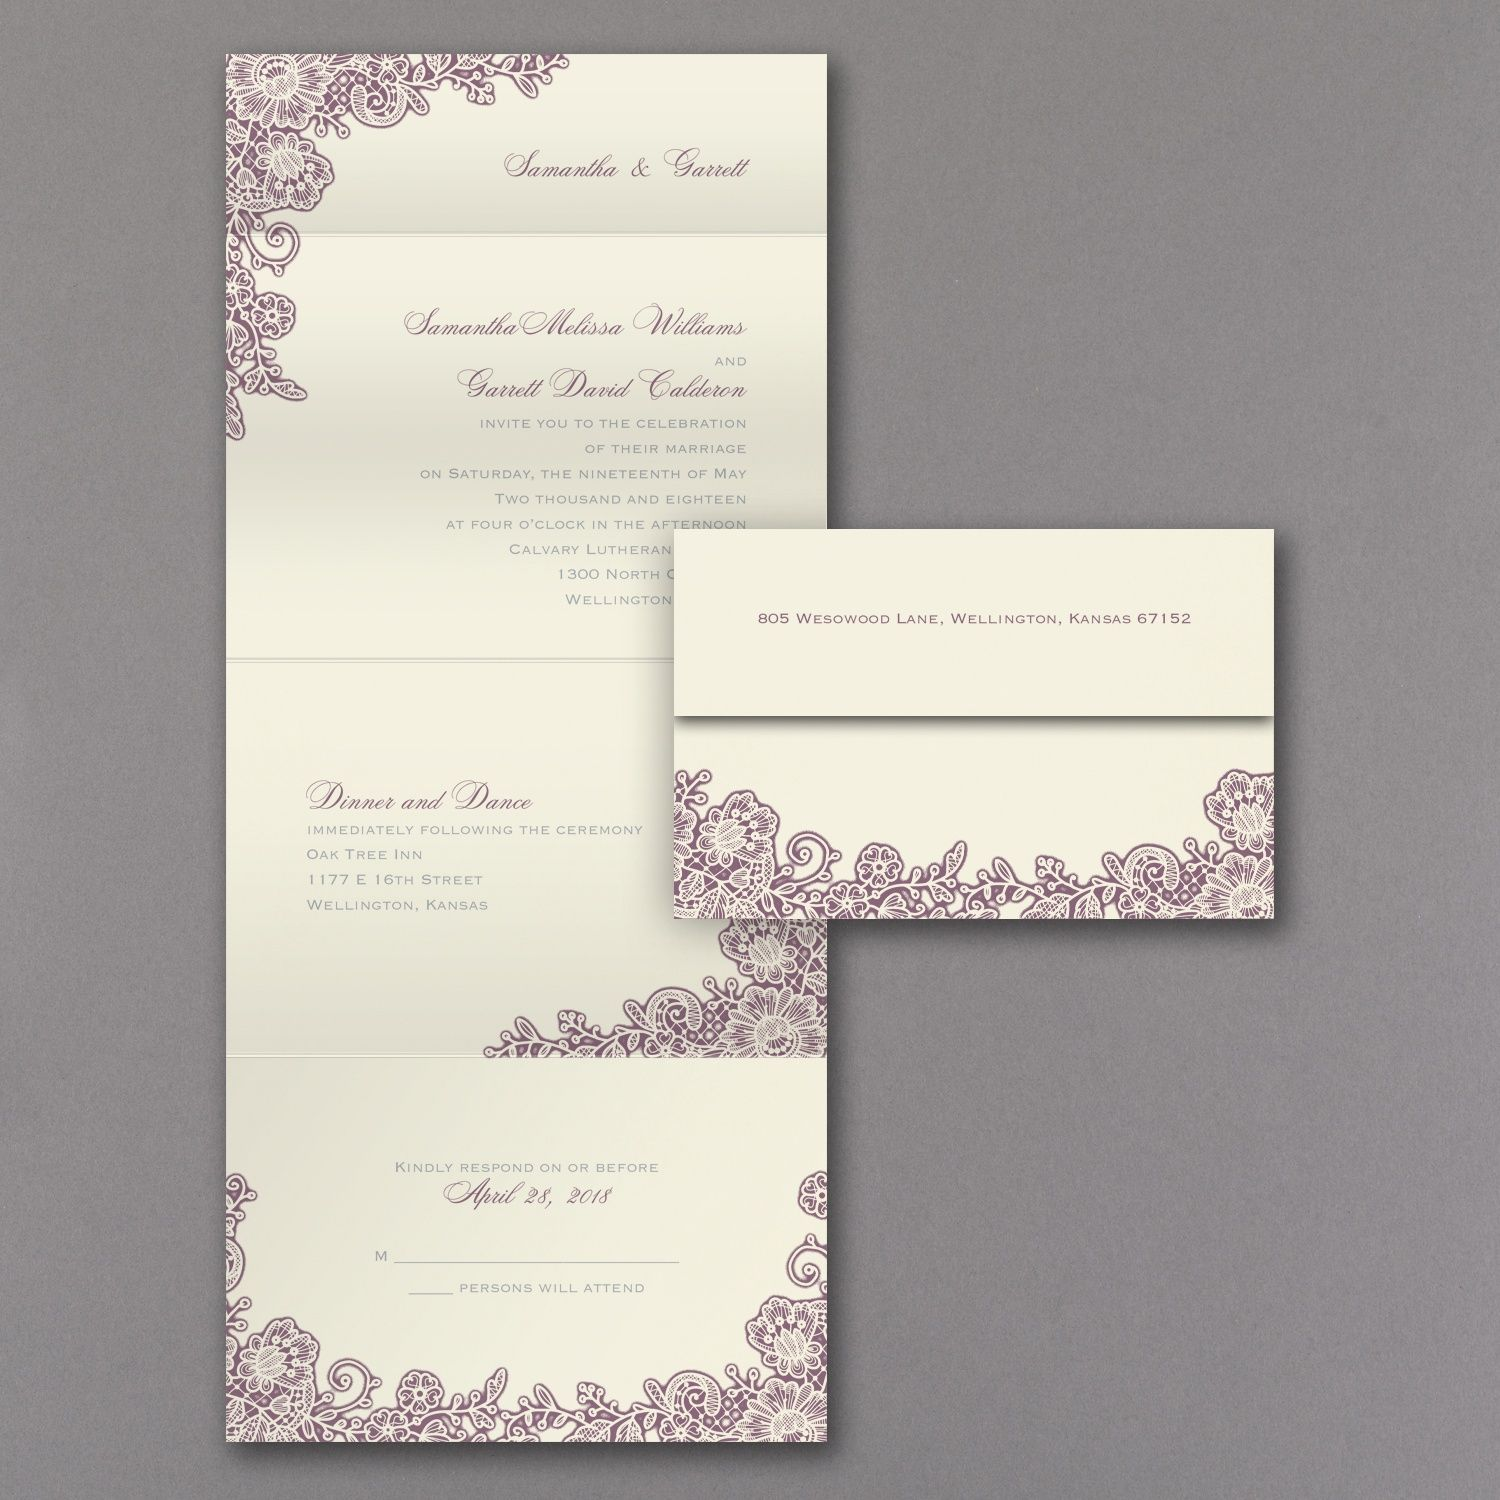 A Little Lace - Seal \'n Send Invitation - Ecru | alfred angelo ...